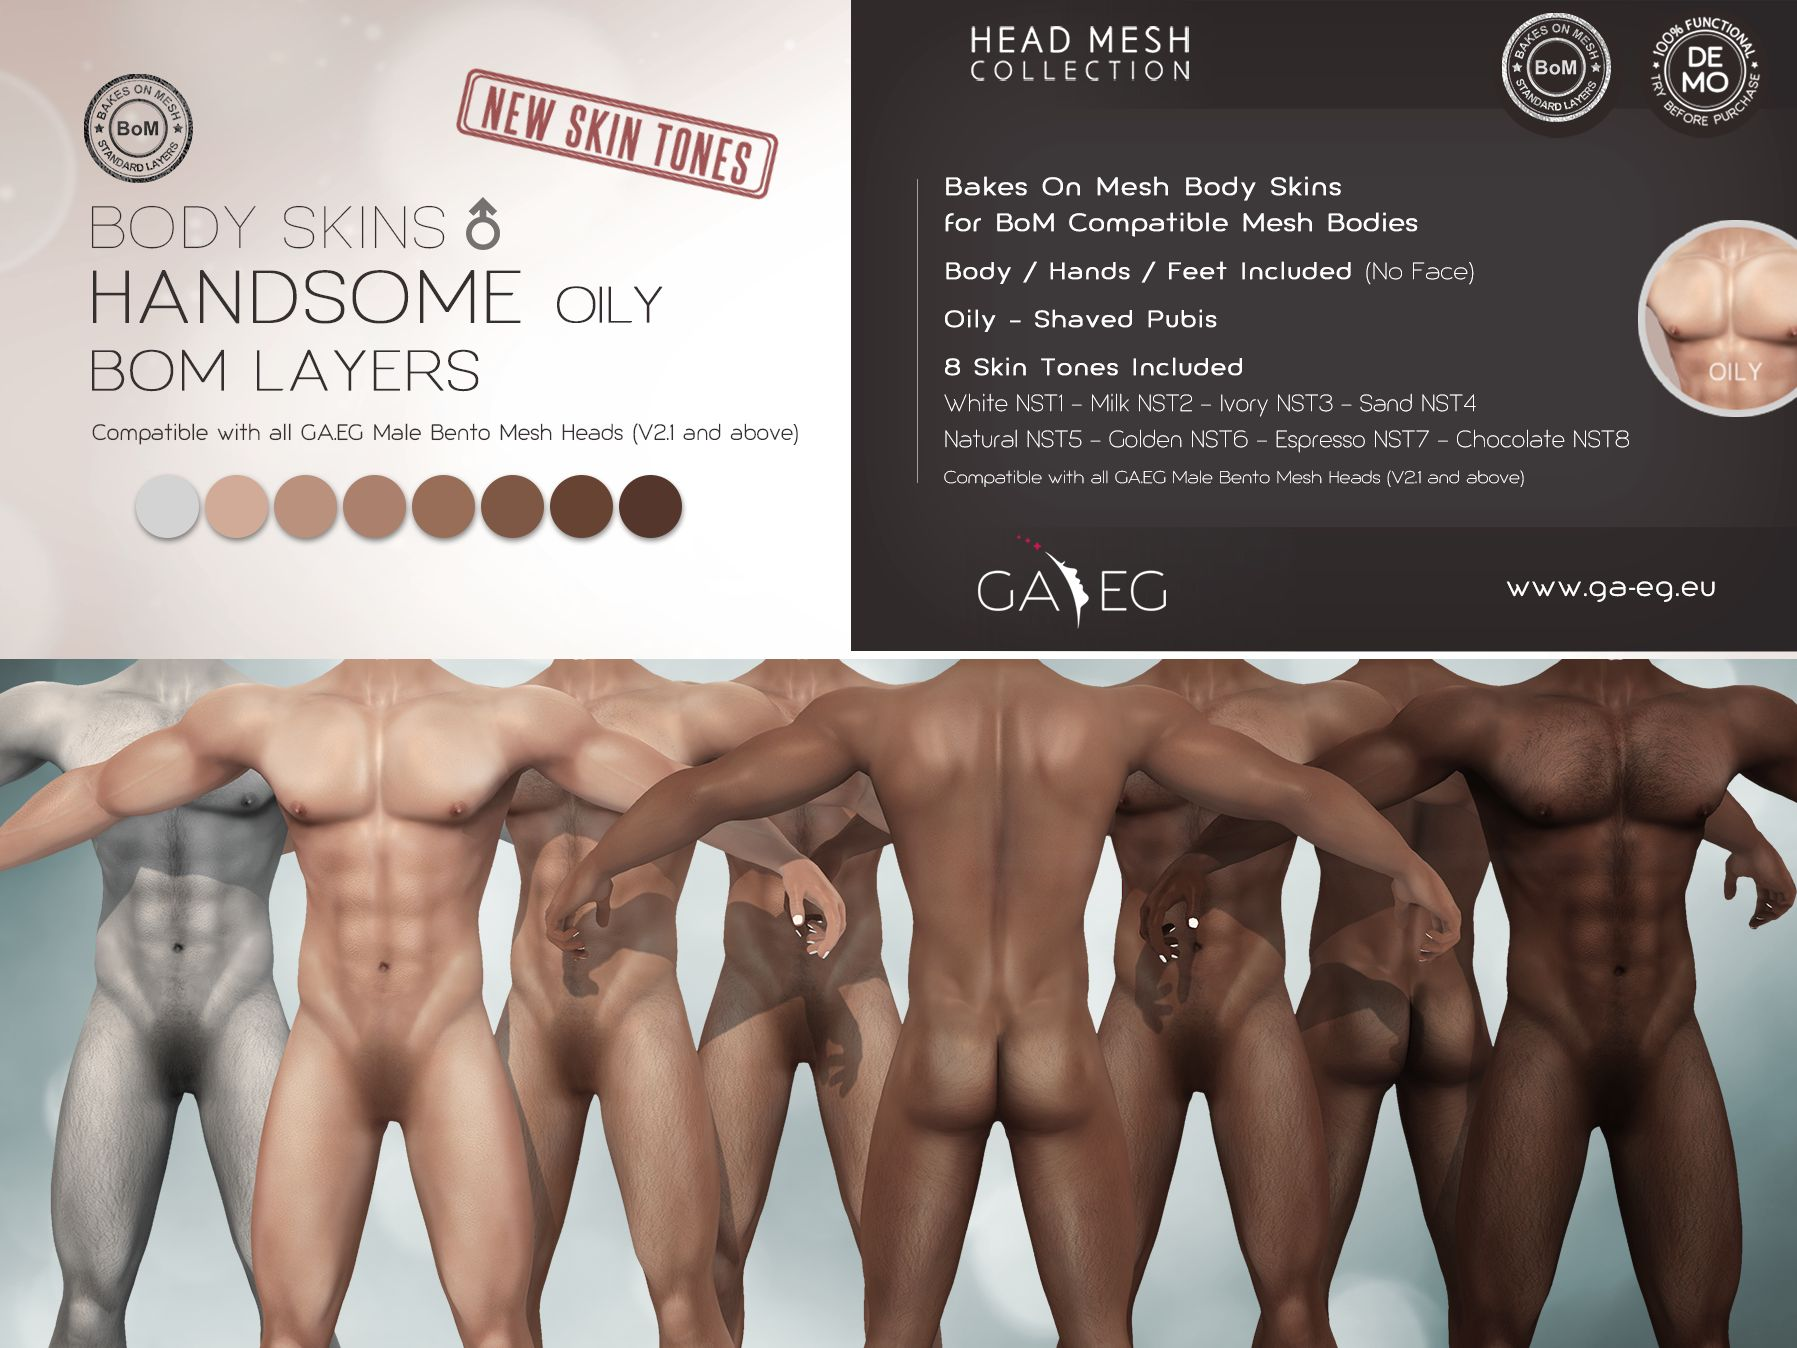 Oily Handsome BODY SKINS Signature